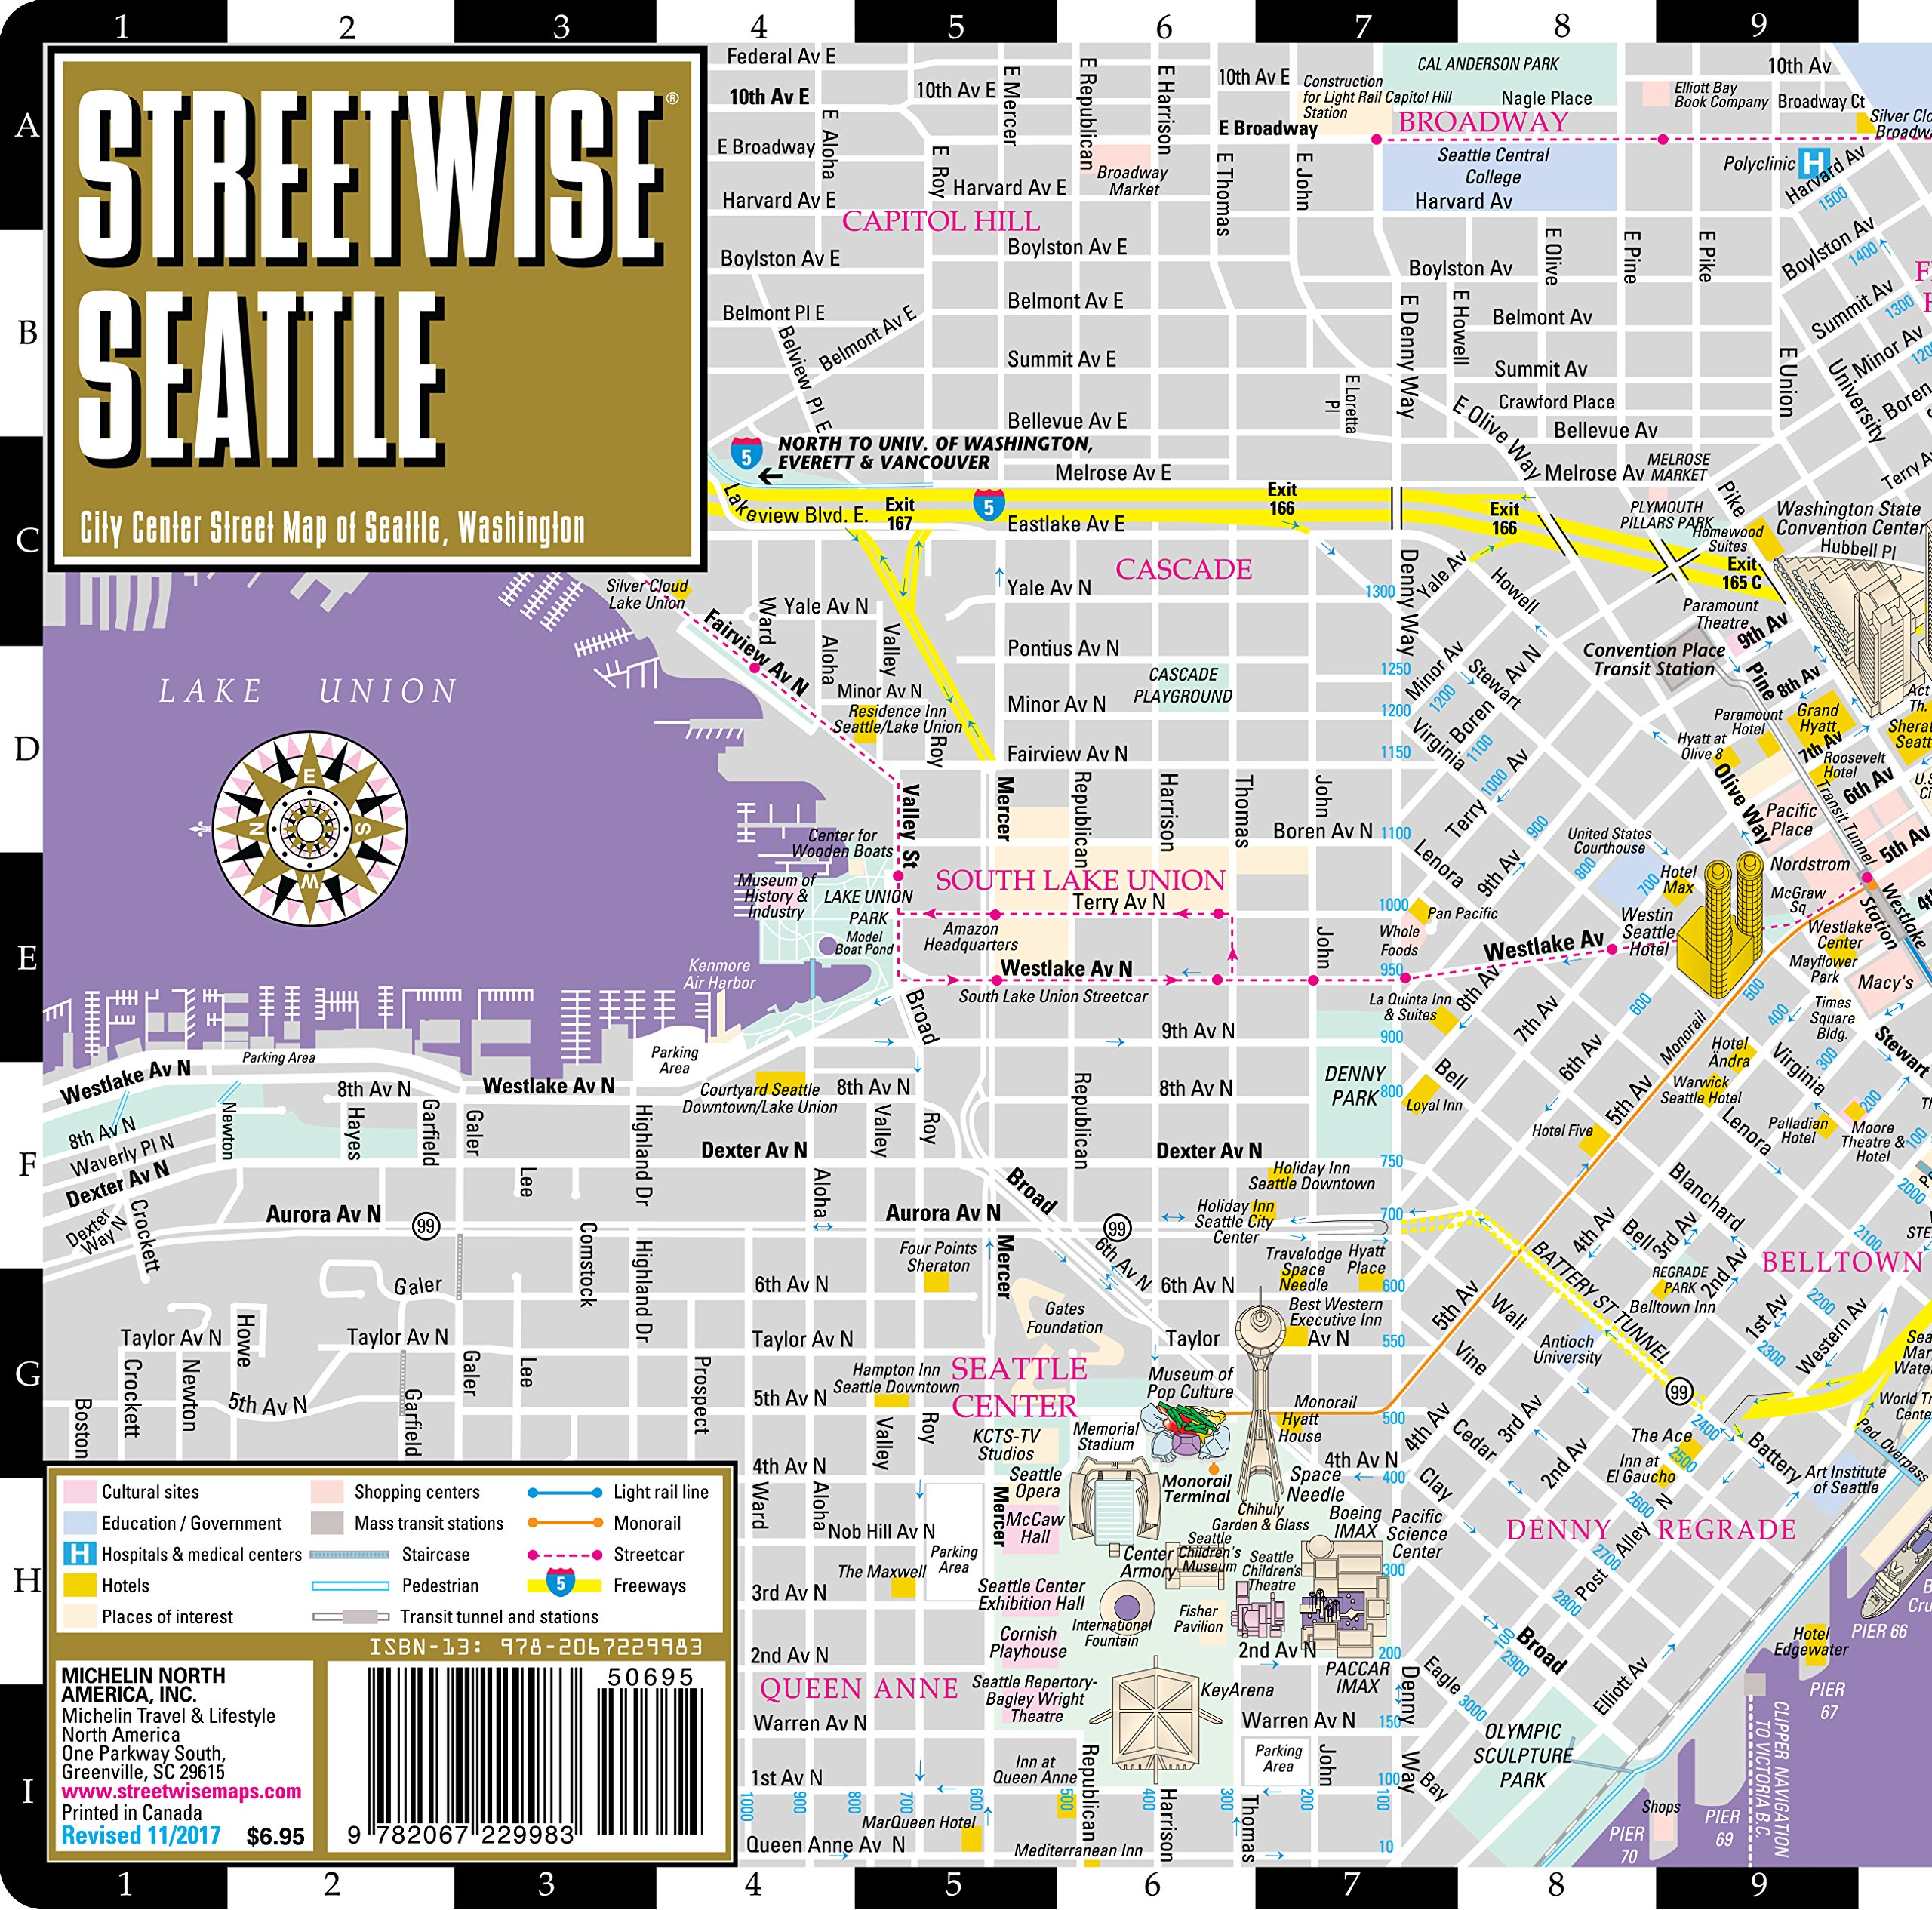 Streetwise Seattle Map - Laminated City Center Street Map of Seattle ...